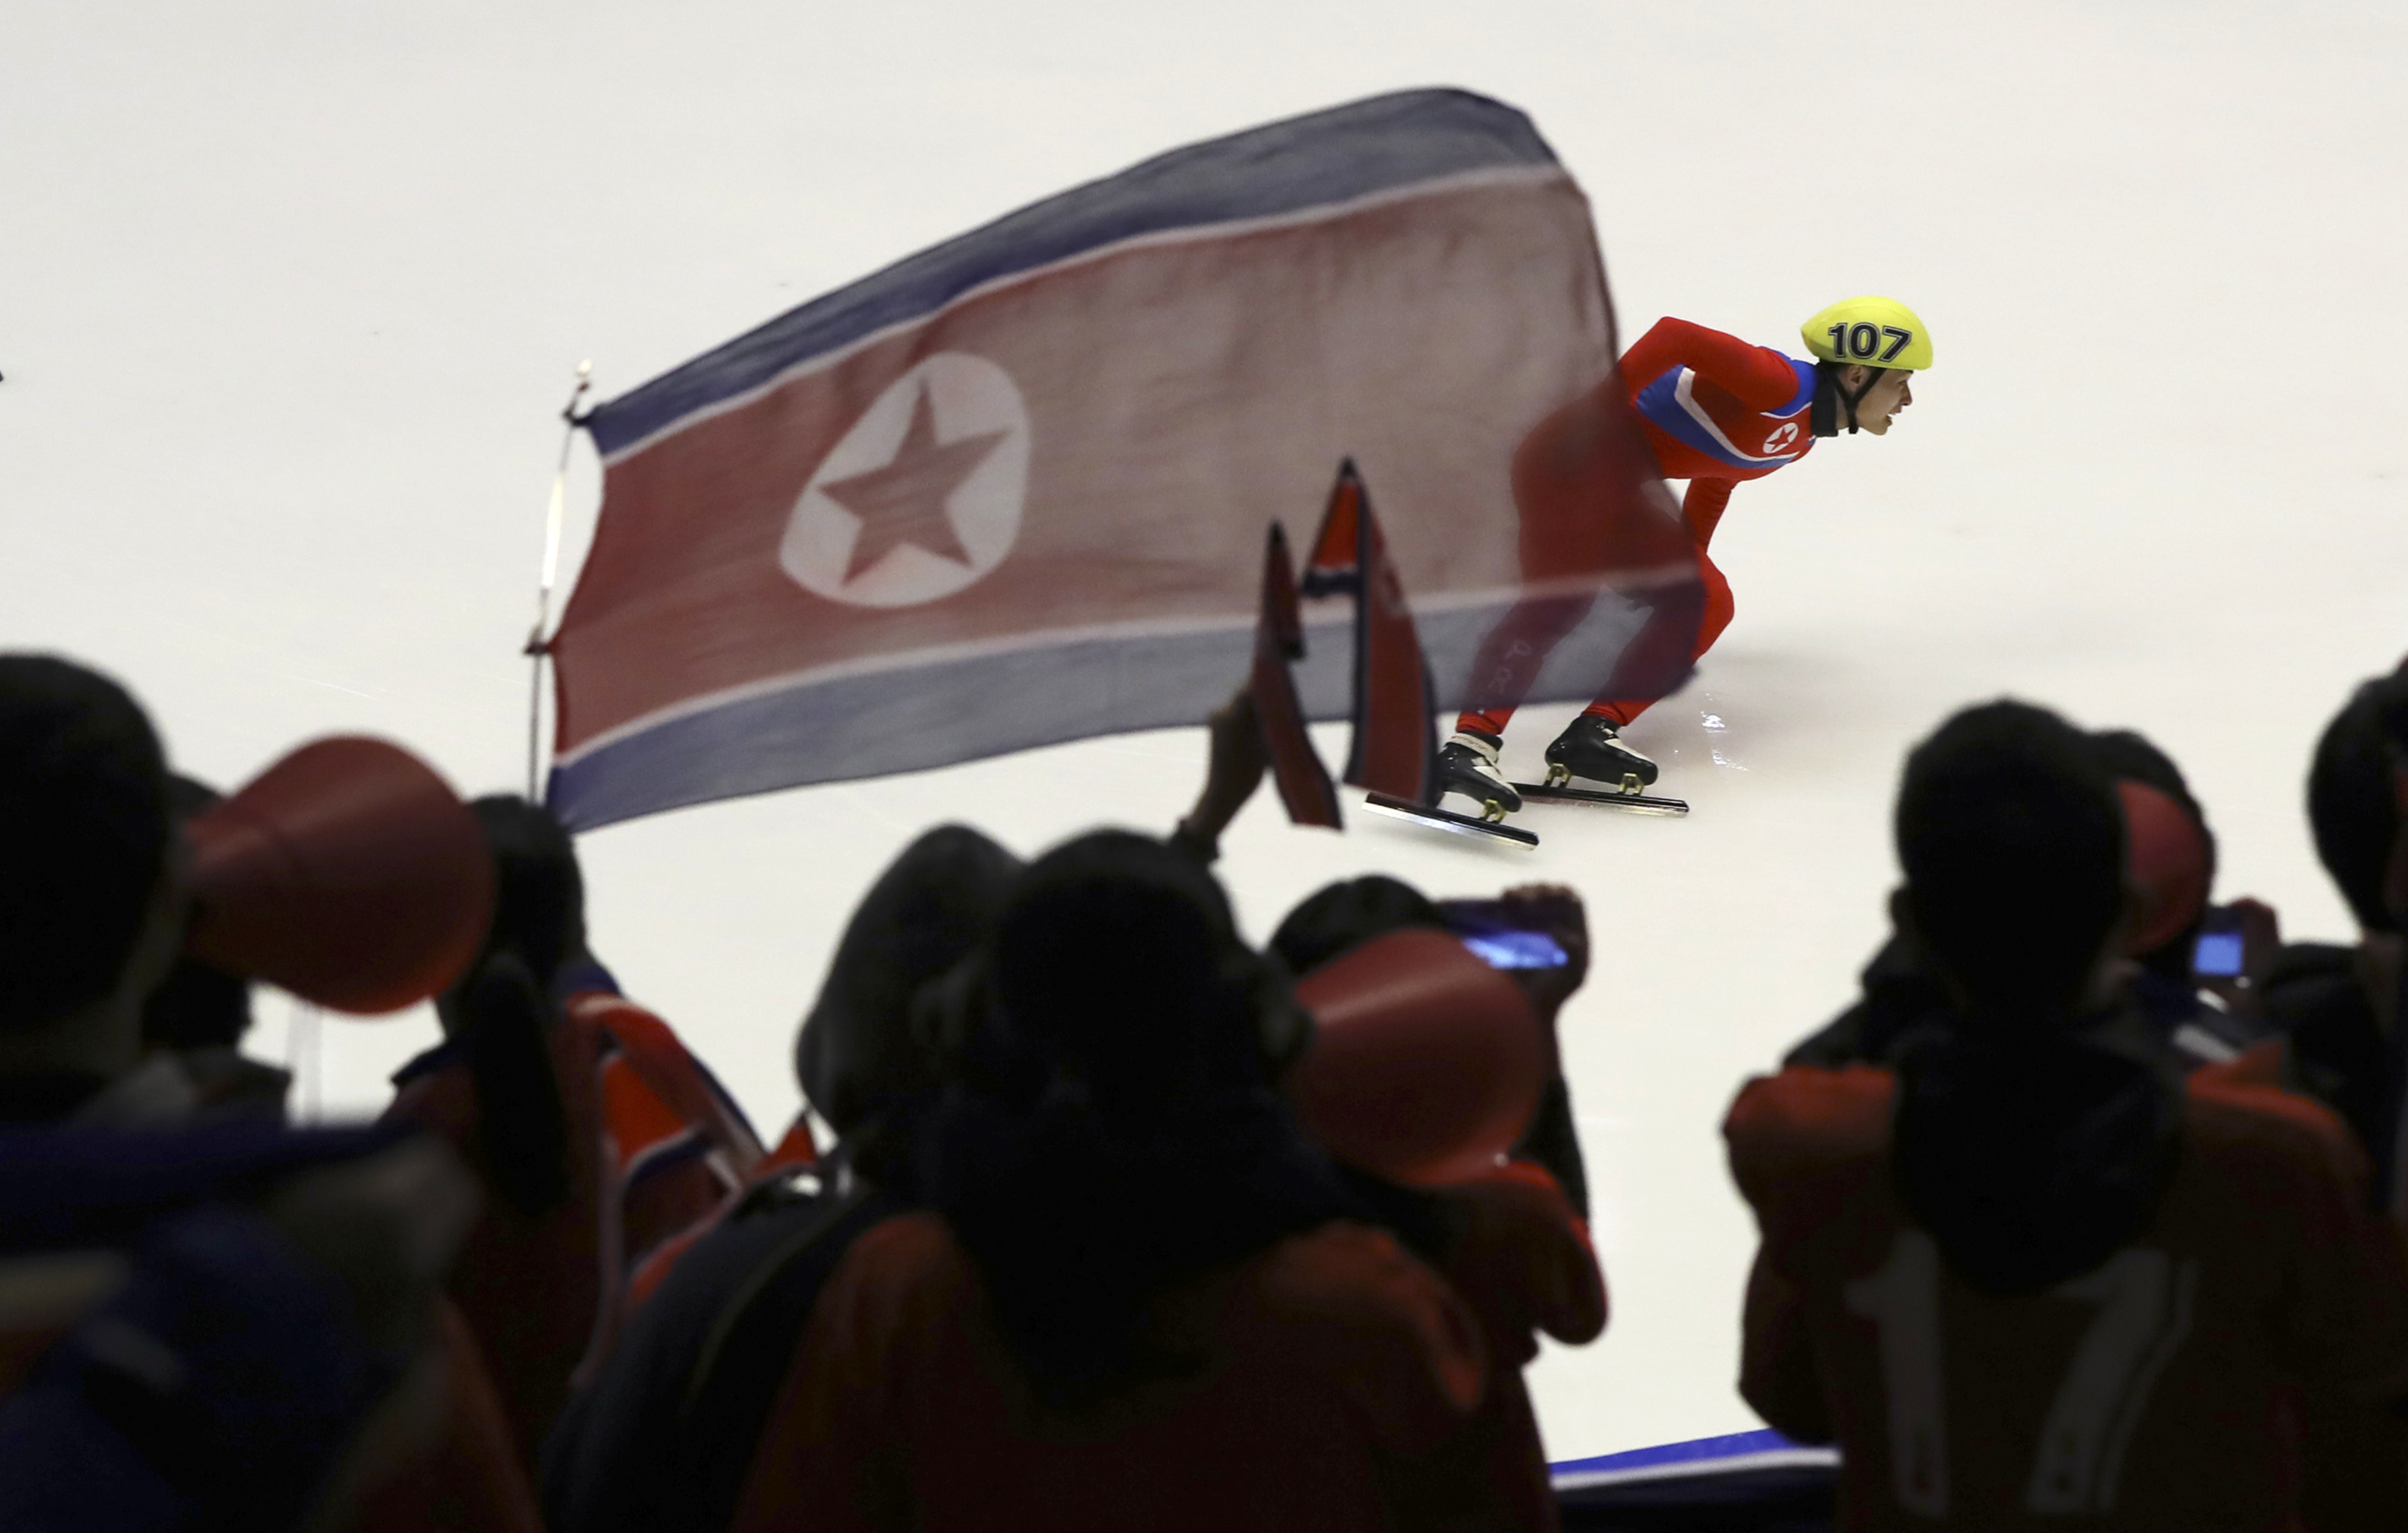 Kim Chol Gwang of North Korea competes as fans of the North Korean team chant during the men's 500 meters heat of short track speed skating competition at the Asian Winter Games at Makomanai Indoor Skating Rink in Sapporo, northern Japan, Tuesday, Feb. 21